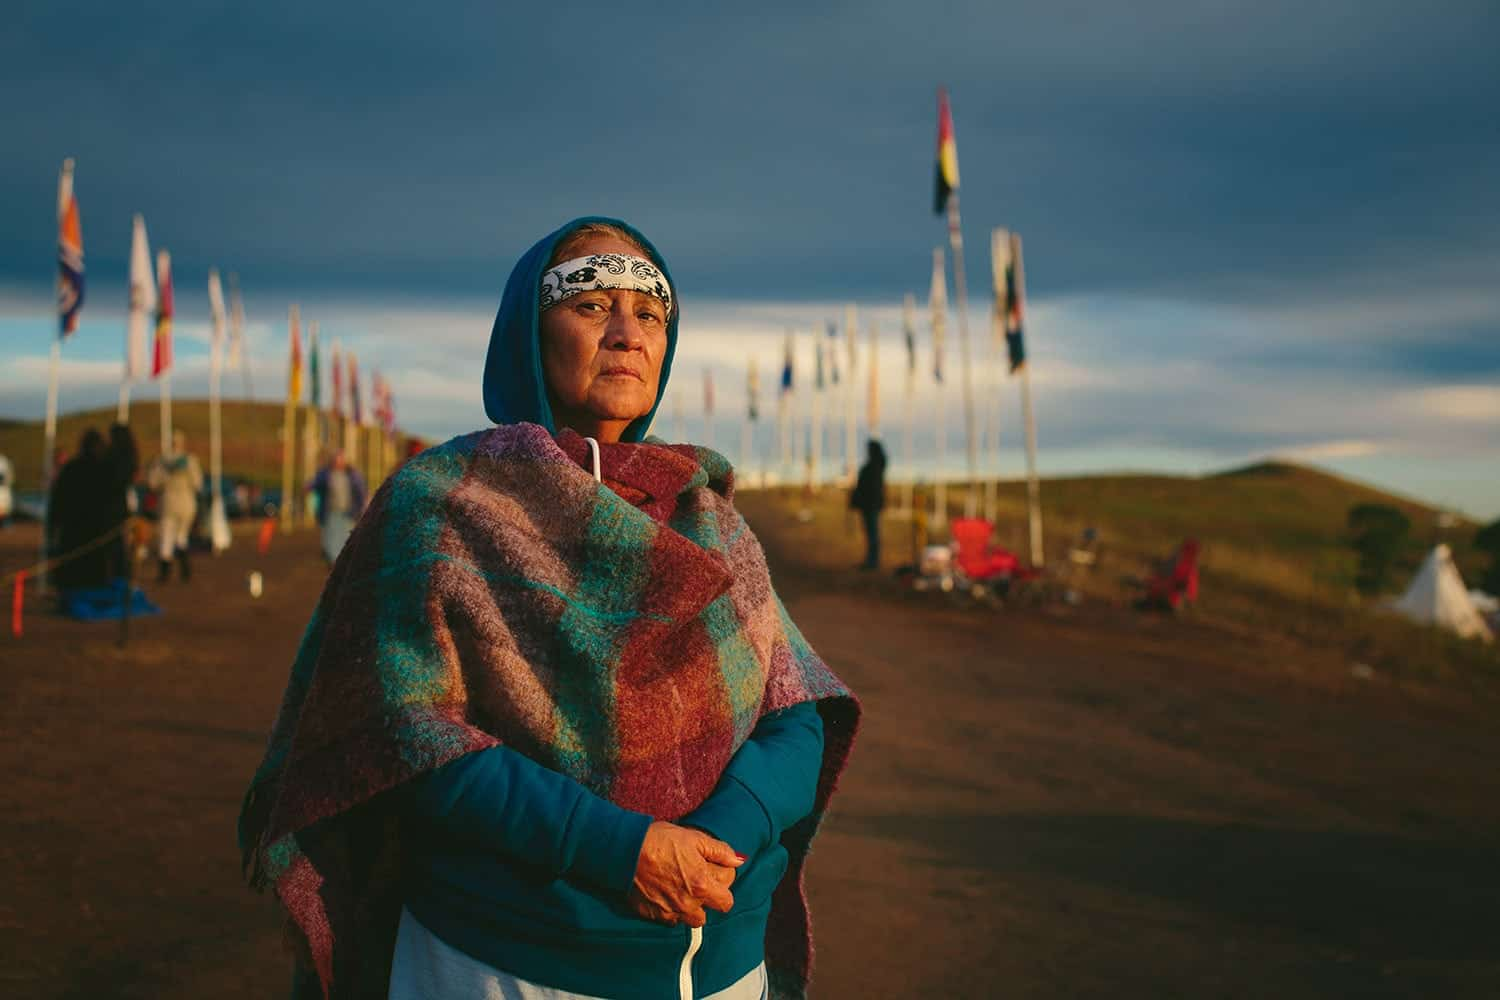 """Shirley Romero Otero is a Chicana activist from San Luis, the oldest indigenous community in the state of Colorado. An heir to the Sangre de Cristo Land Grant, her community is dealing with its own fight for water. """"When we heard about this particular struggle, our hearts pulled us this way because the next battle after losing our land is truly the fight for water,"""" she said."""